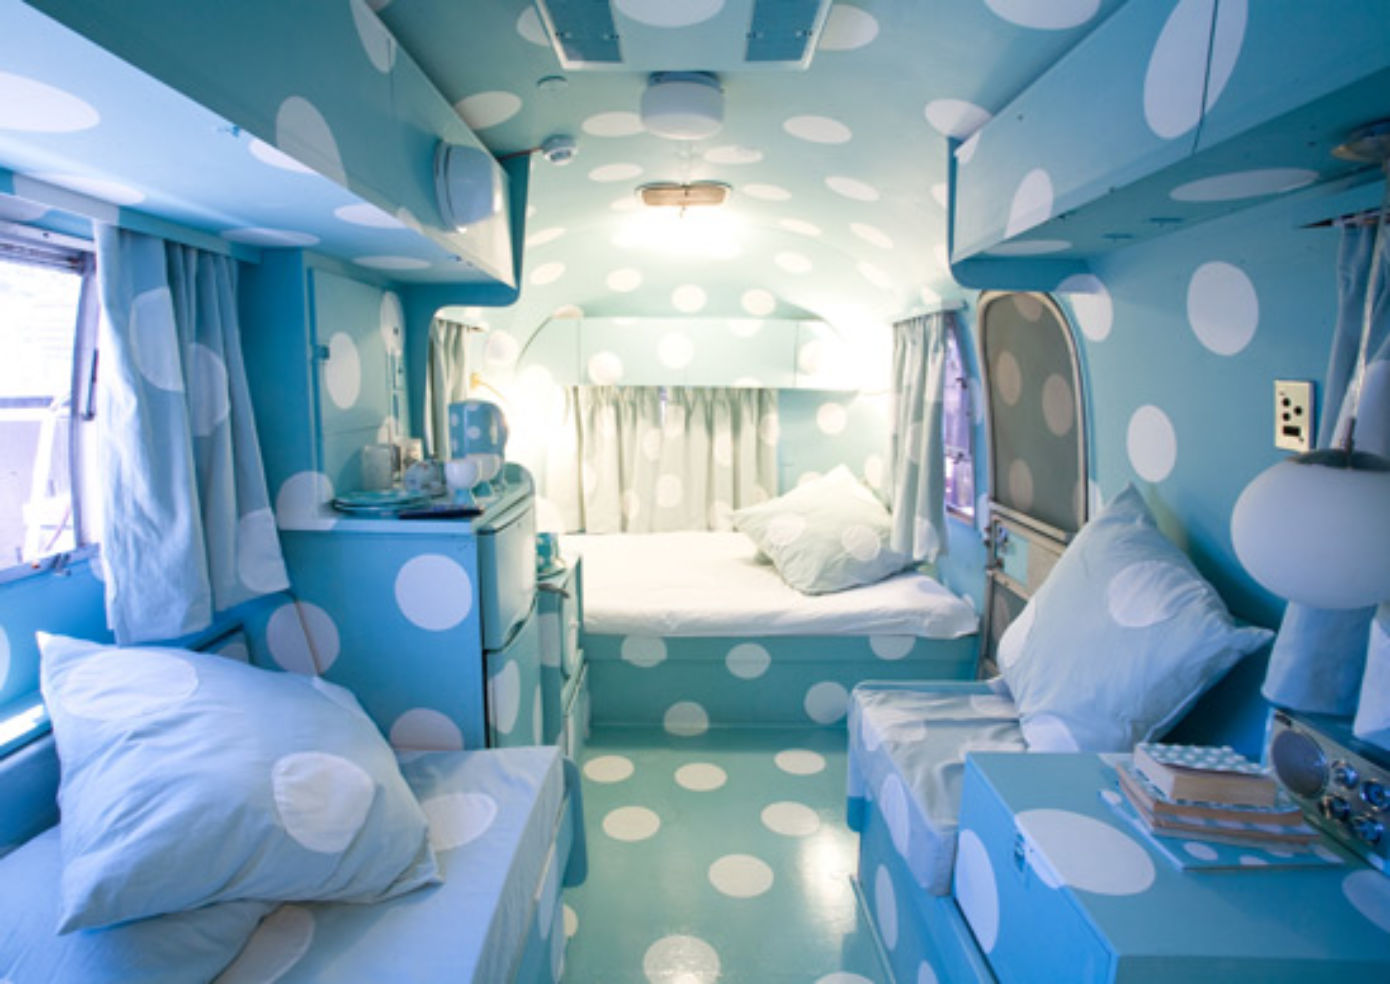 Inside one of the airstream trailers at Airstream Penthouse Trailer Park